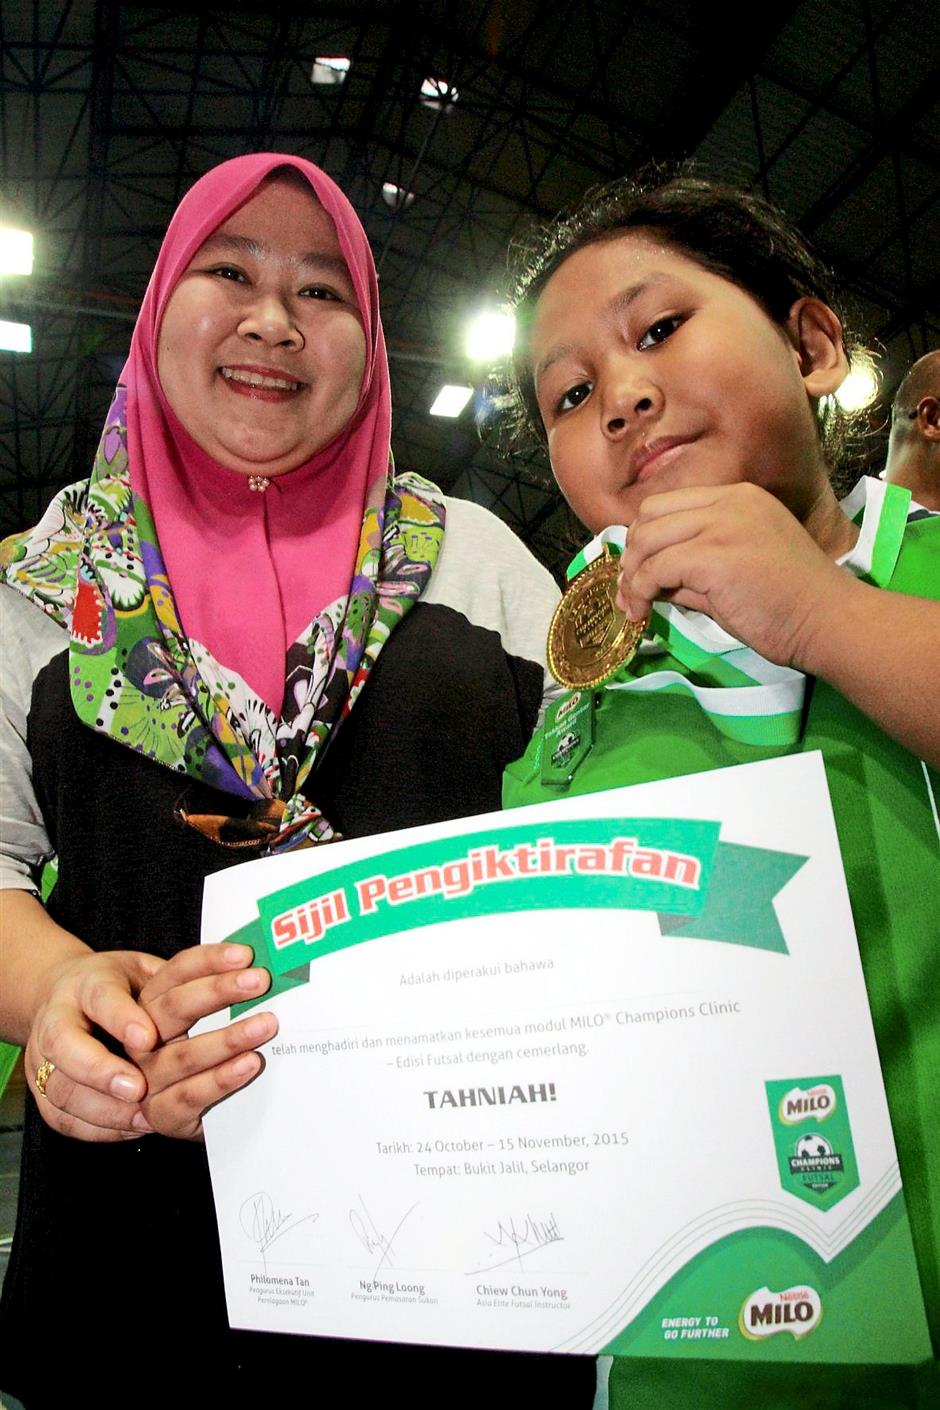 Nurdhiyaa with mother Norizan as she shows off her medal and certificate of participation.